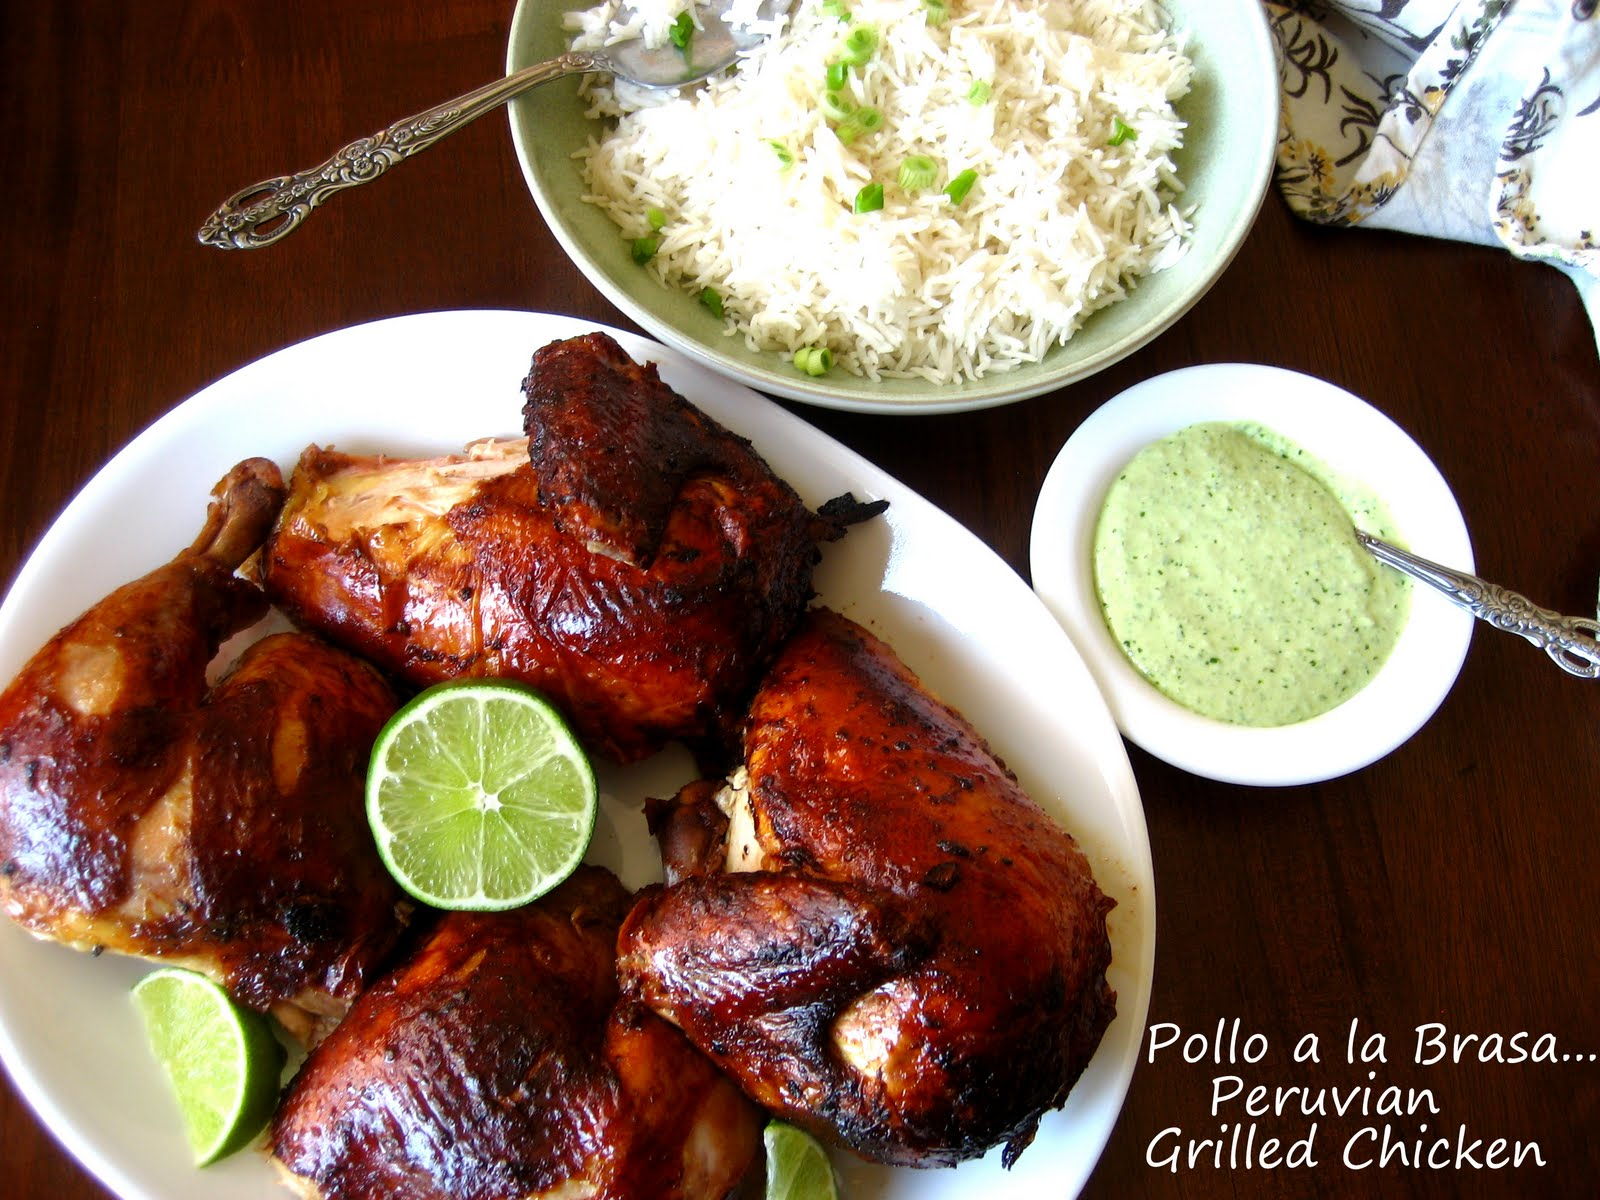 ... Sauce... Peruvian Grilled Chicken with Green Chile Sauce in Chicken